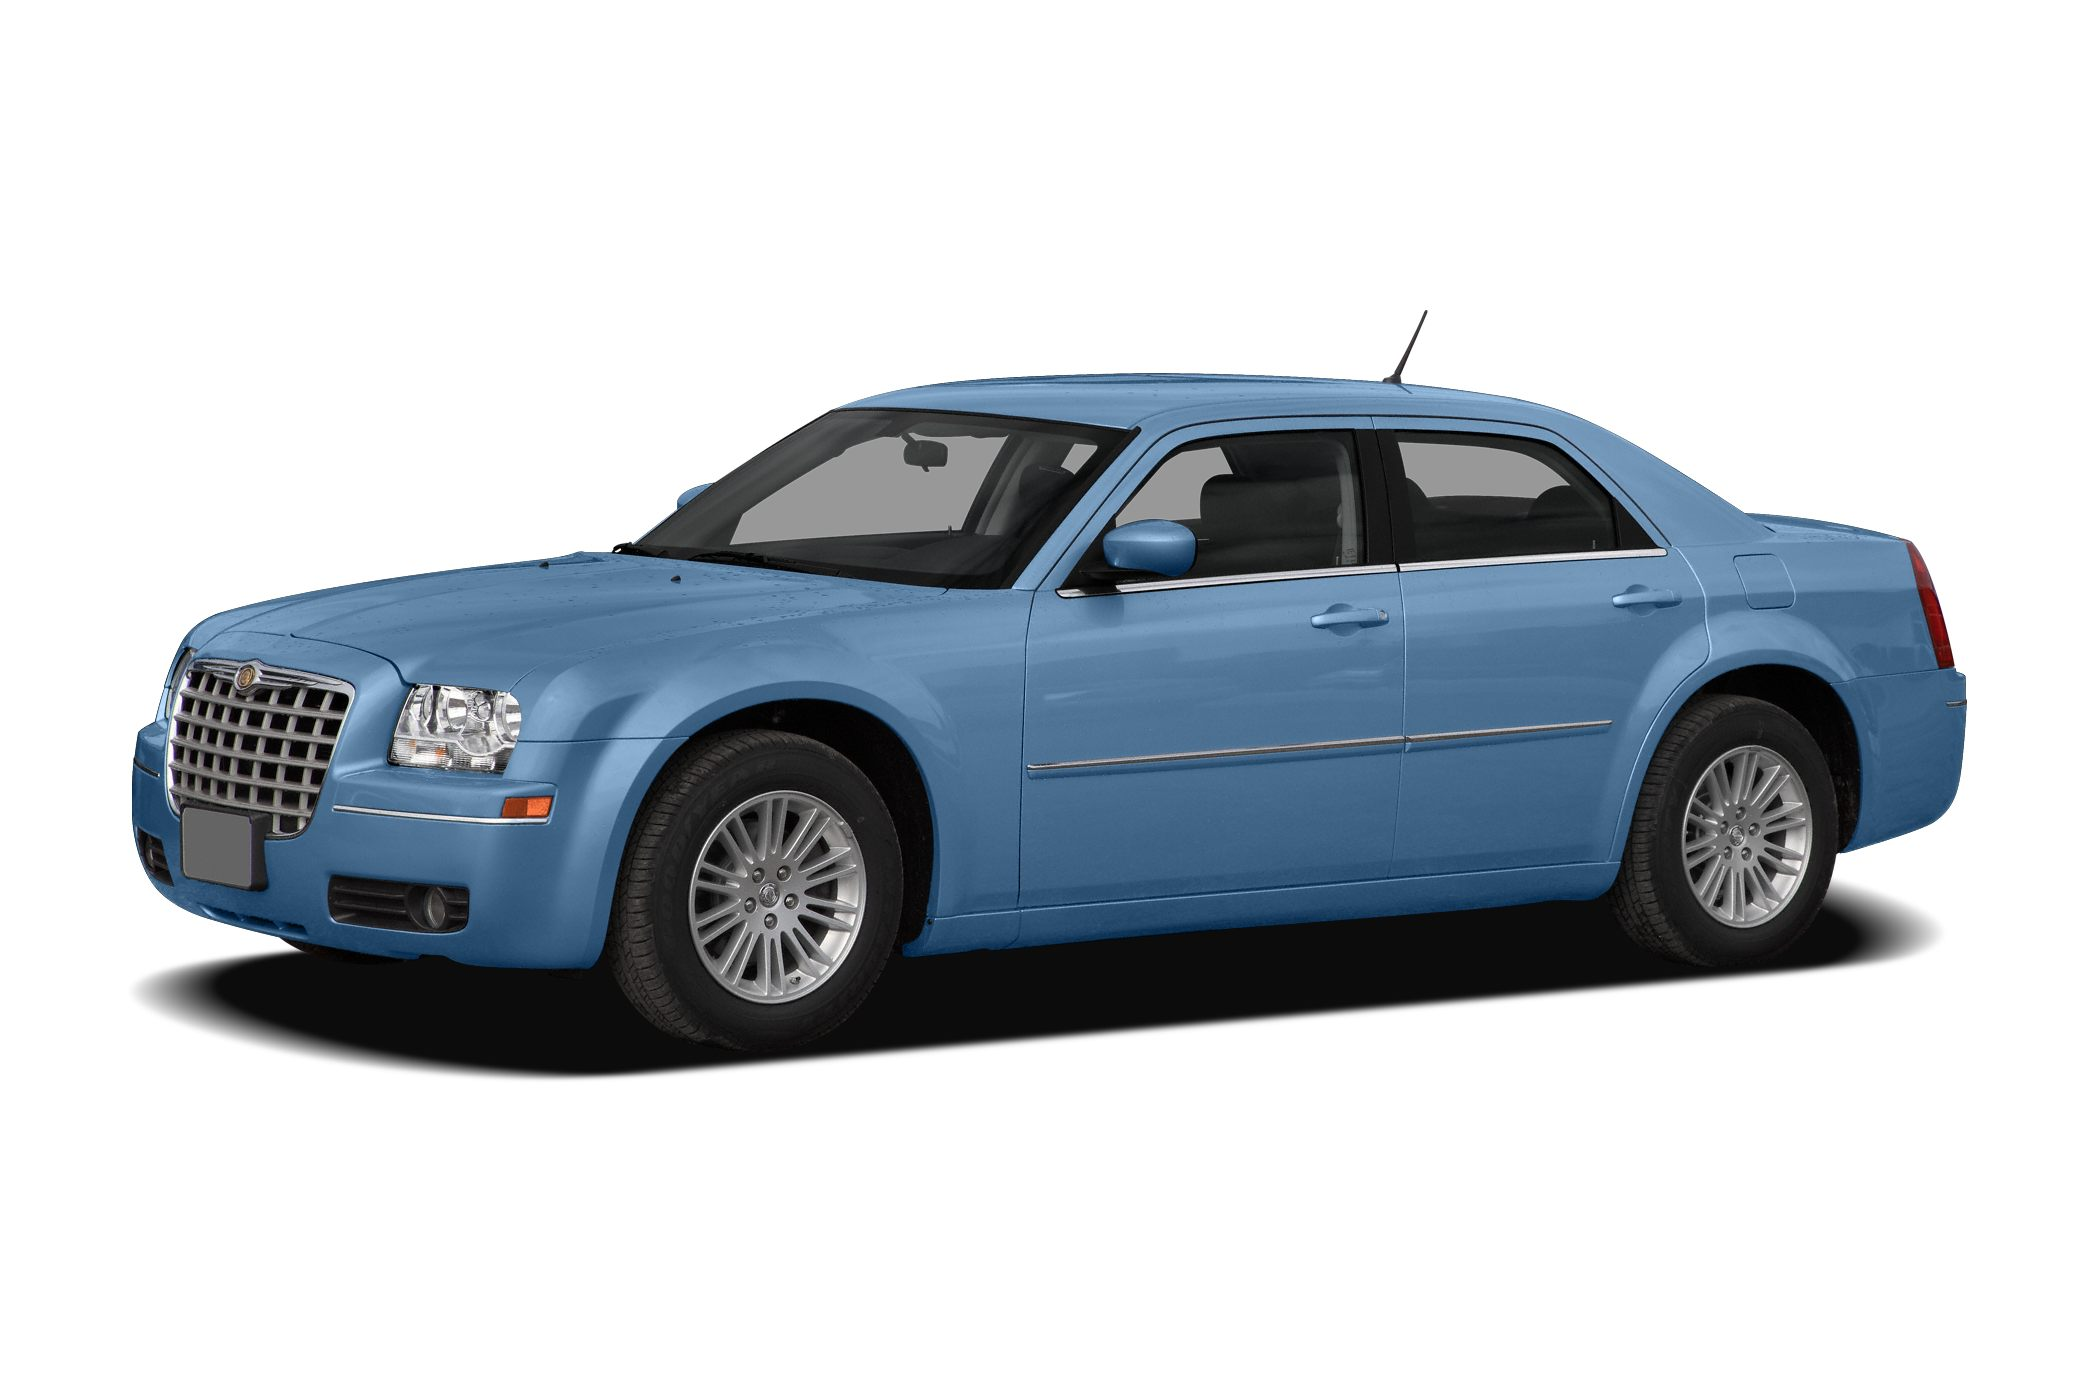 2008 Chrysler 300 Touring Sedan for sale in Fort Collins for $8,000 with 157,935 miles.